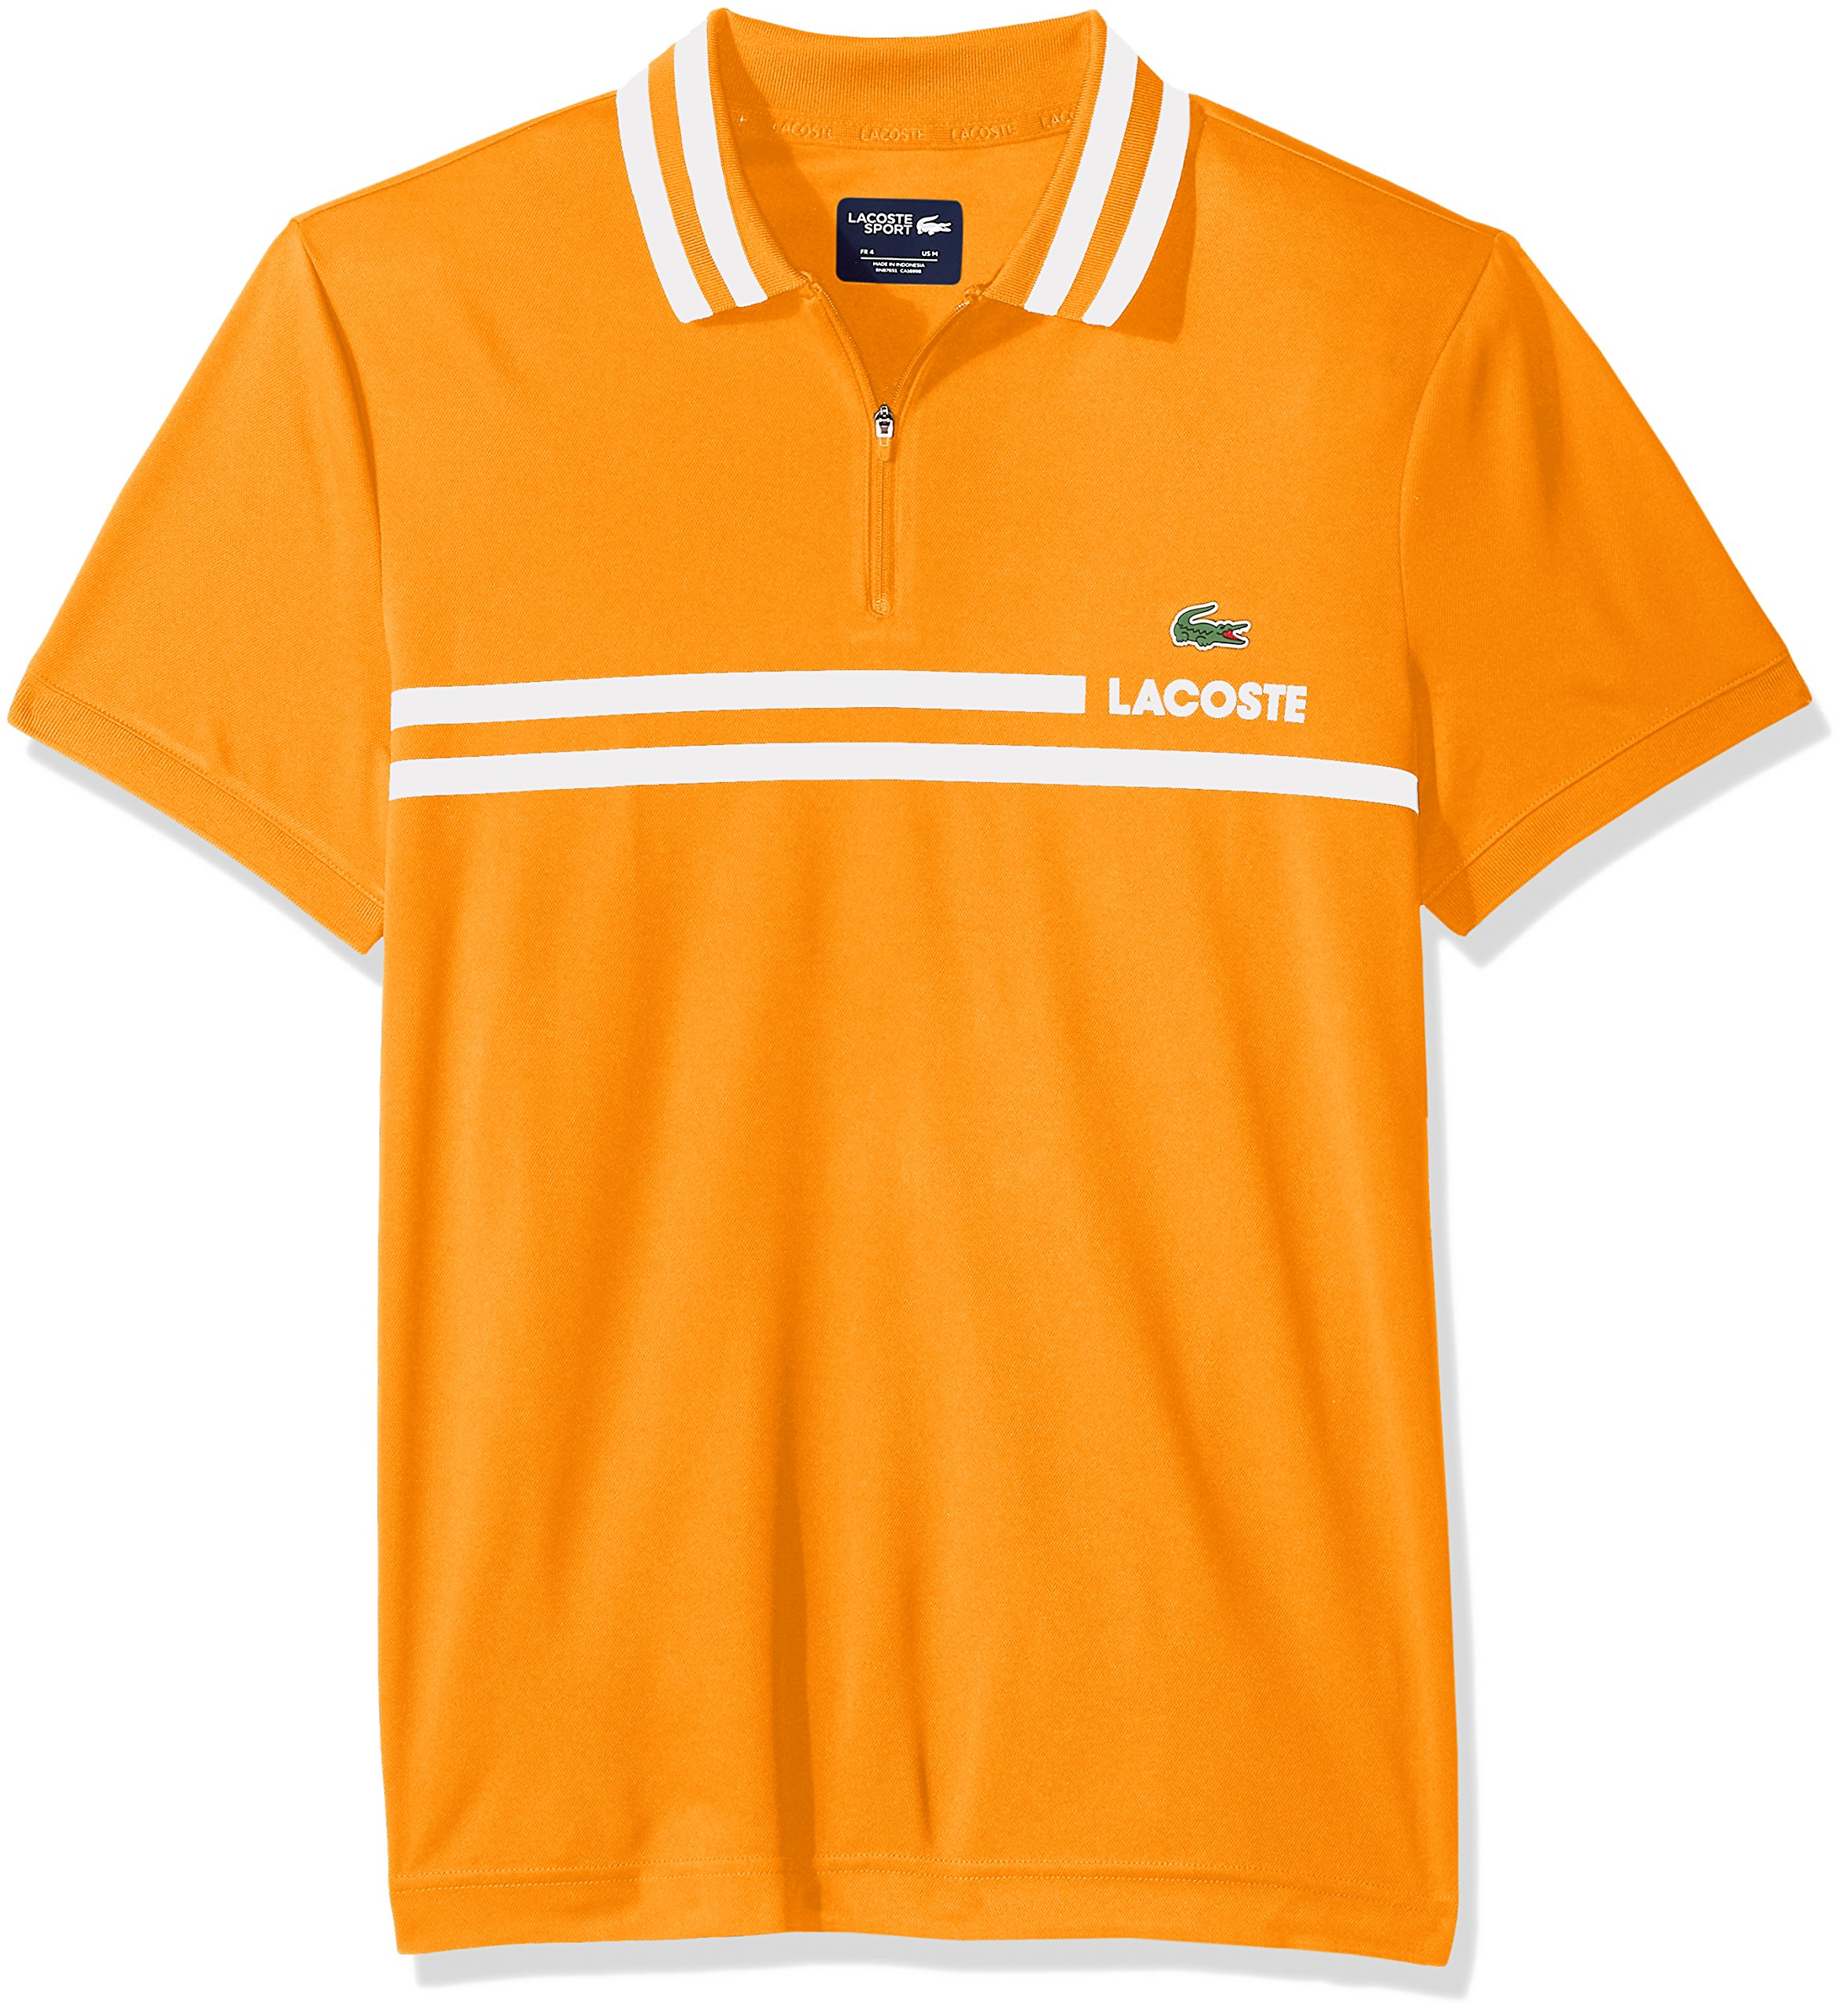 Lacoste Men's Short Sleeve Pique Fine Stripe with Jacquard Collar and Zip Placket Polo, DH3318, Apricot/White, X-Large